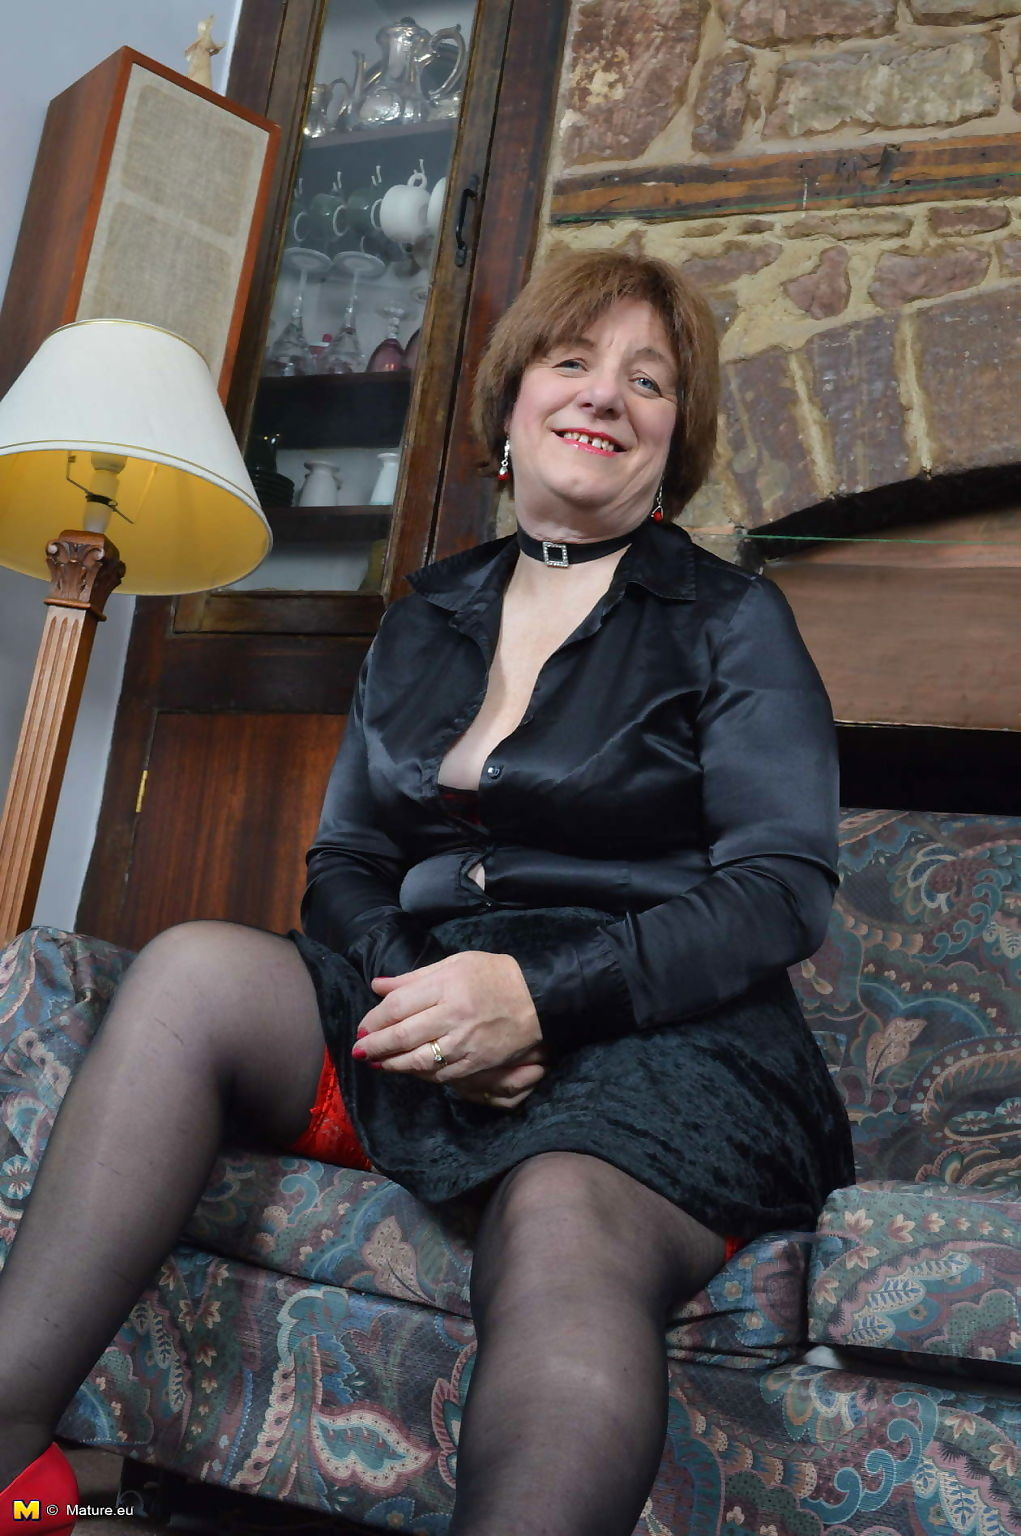 Naughty british mature slut janet wilson playing with herself - part 3085